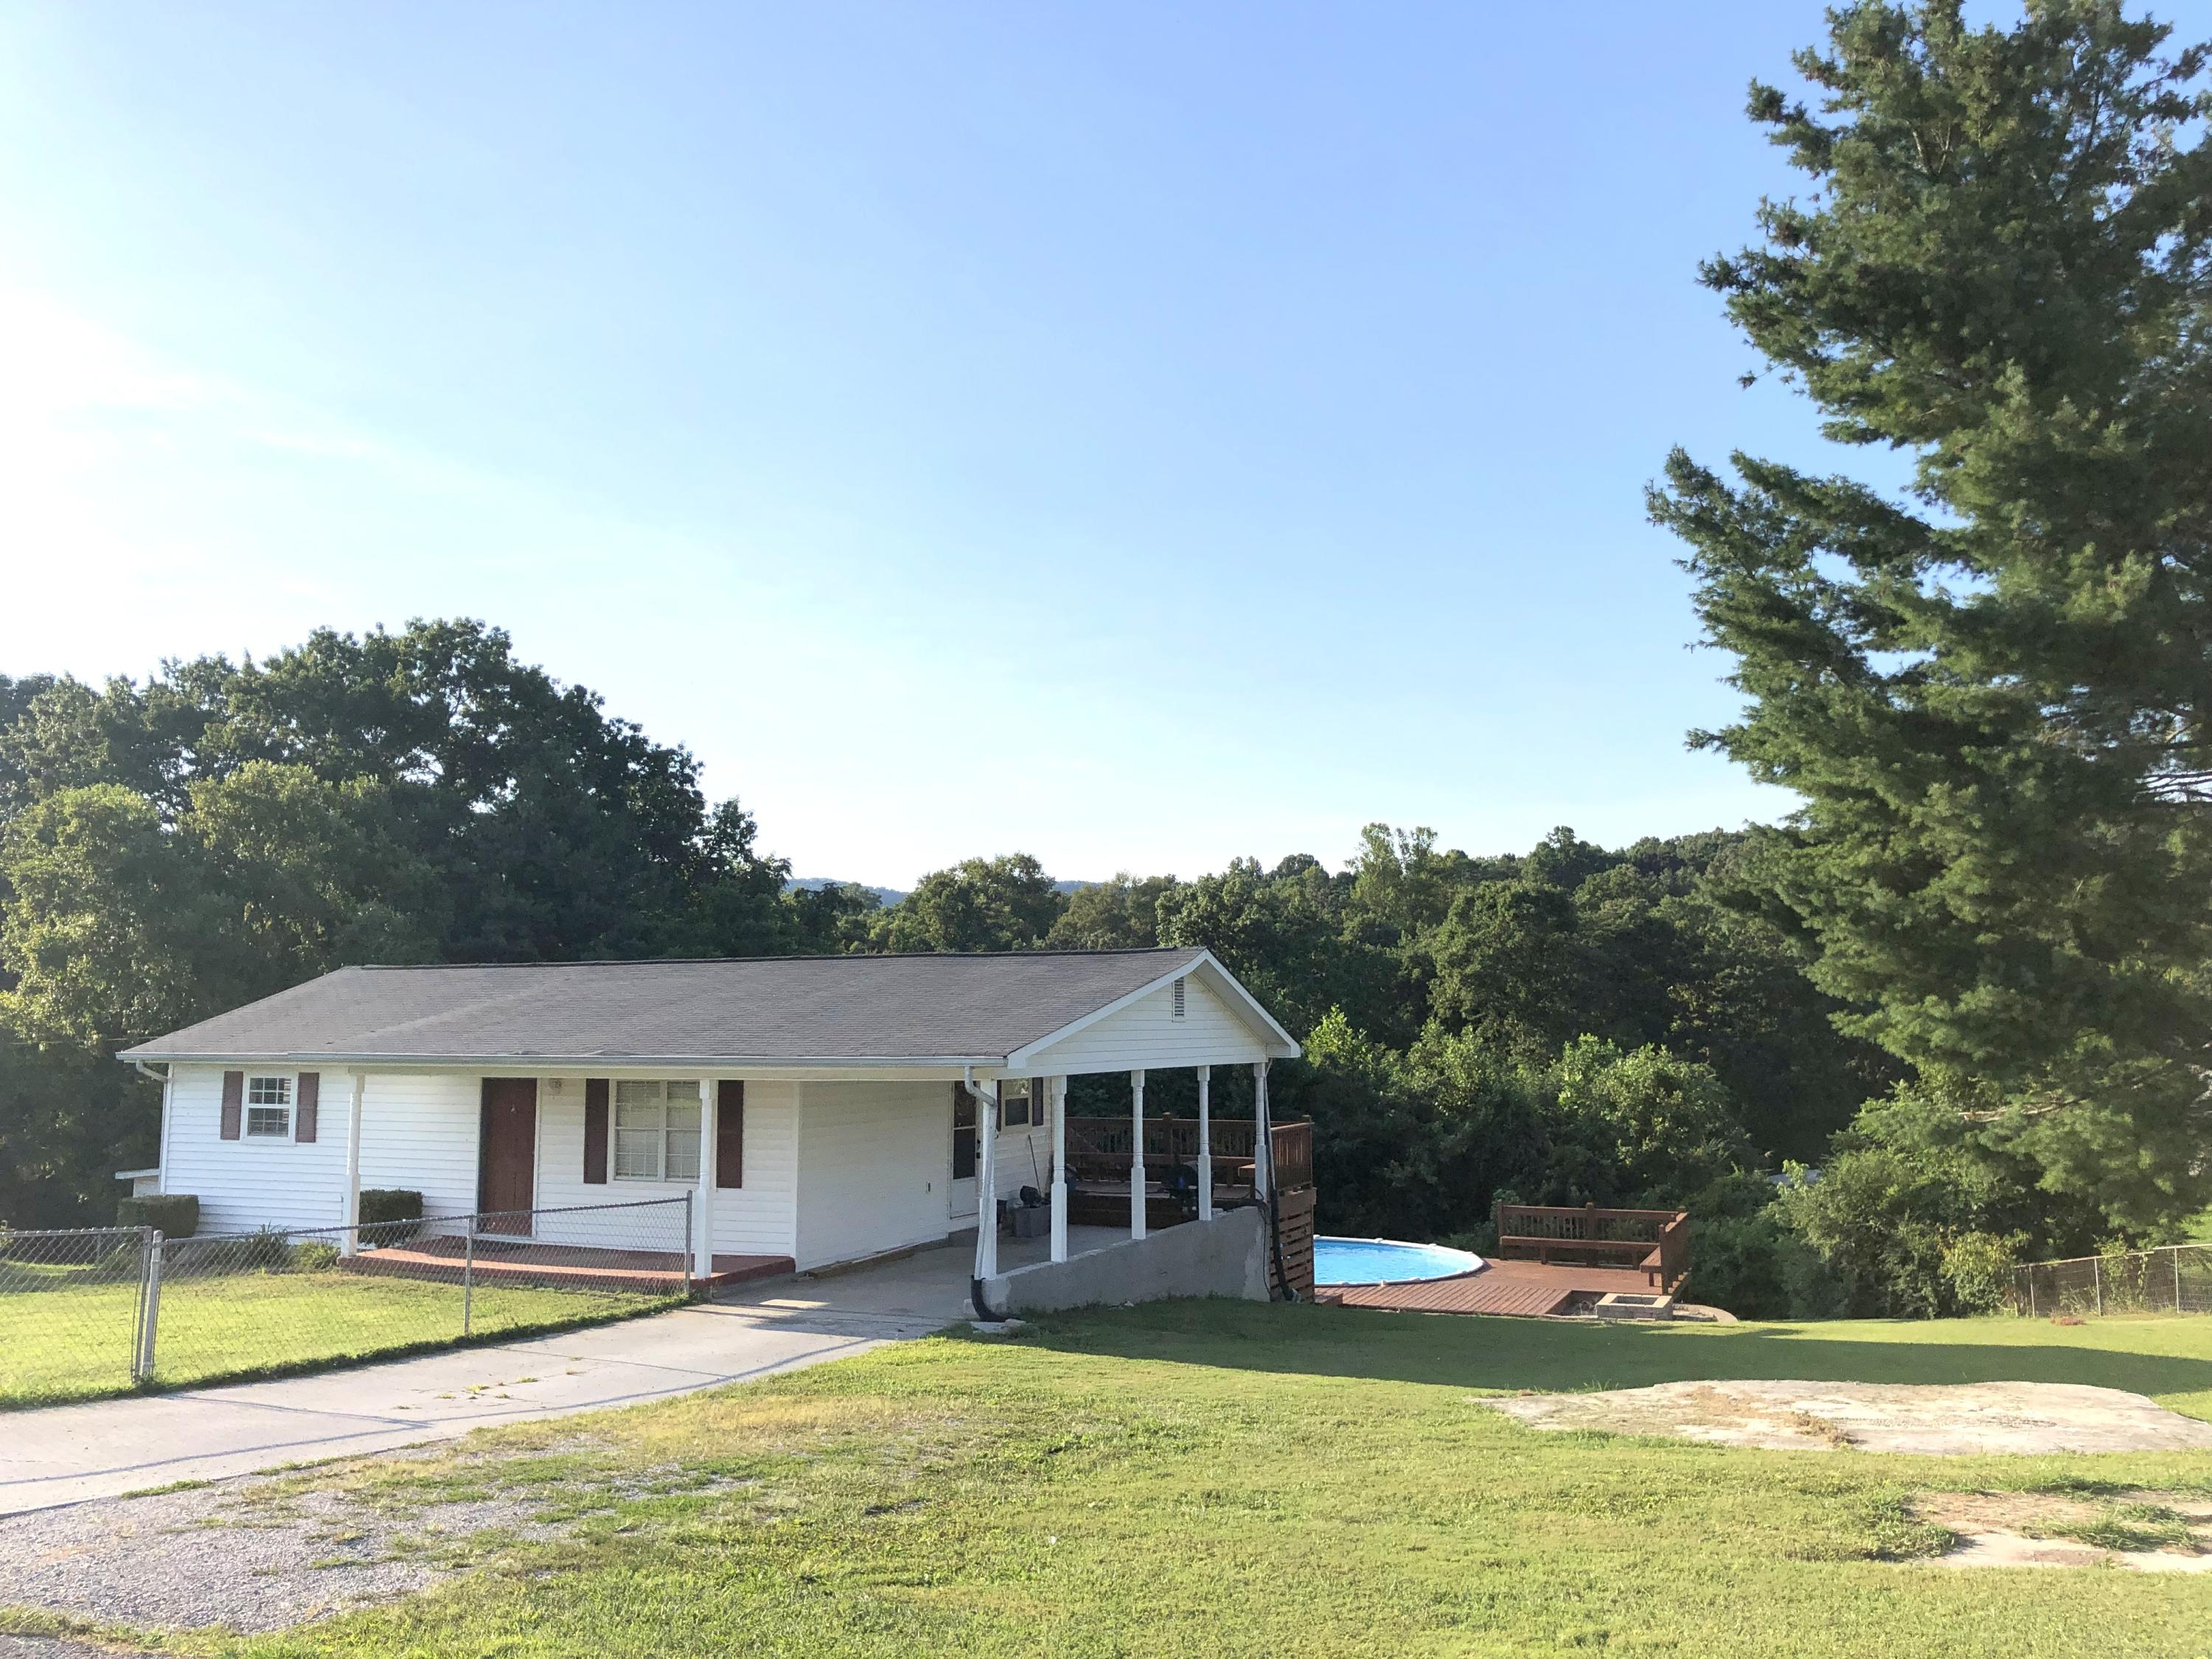 245 Camp Ridge Rd, Lafollette, Tennessee 37766, 3 Bedrooms Bedrooms, ,3 BathroomsBathrooms,Single Family,For Sale,Camp Ridge,1091599